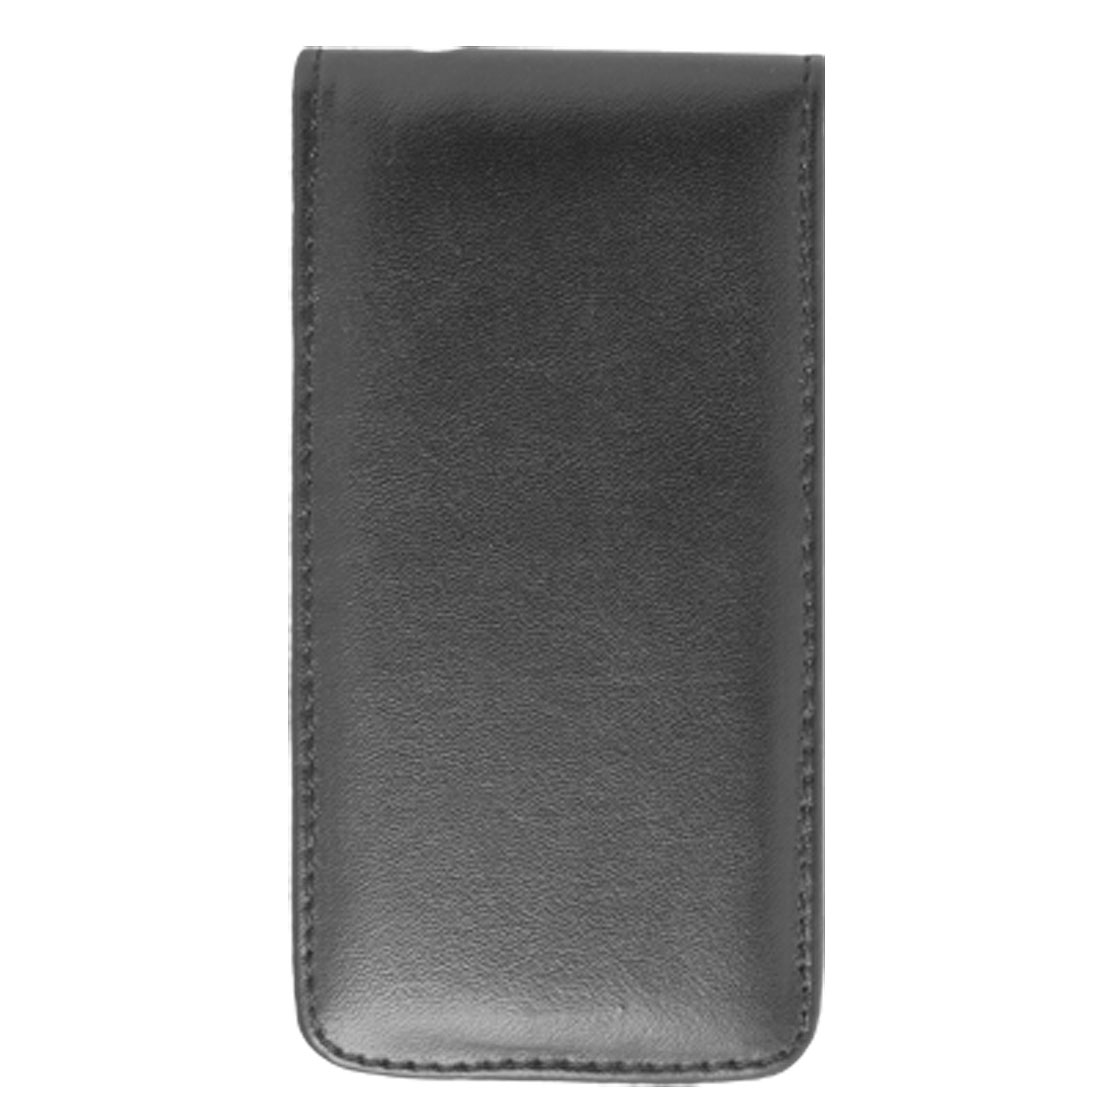 Black Faux Leather Magnetic Flap Holder Case for Apple iPhone 4 4G